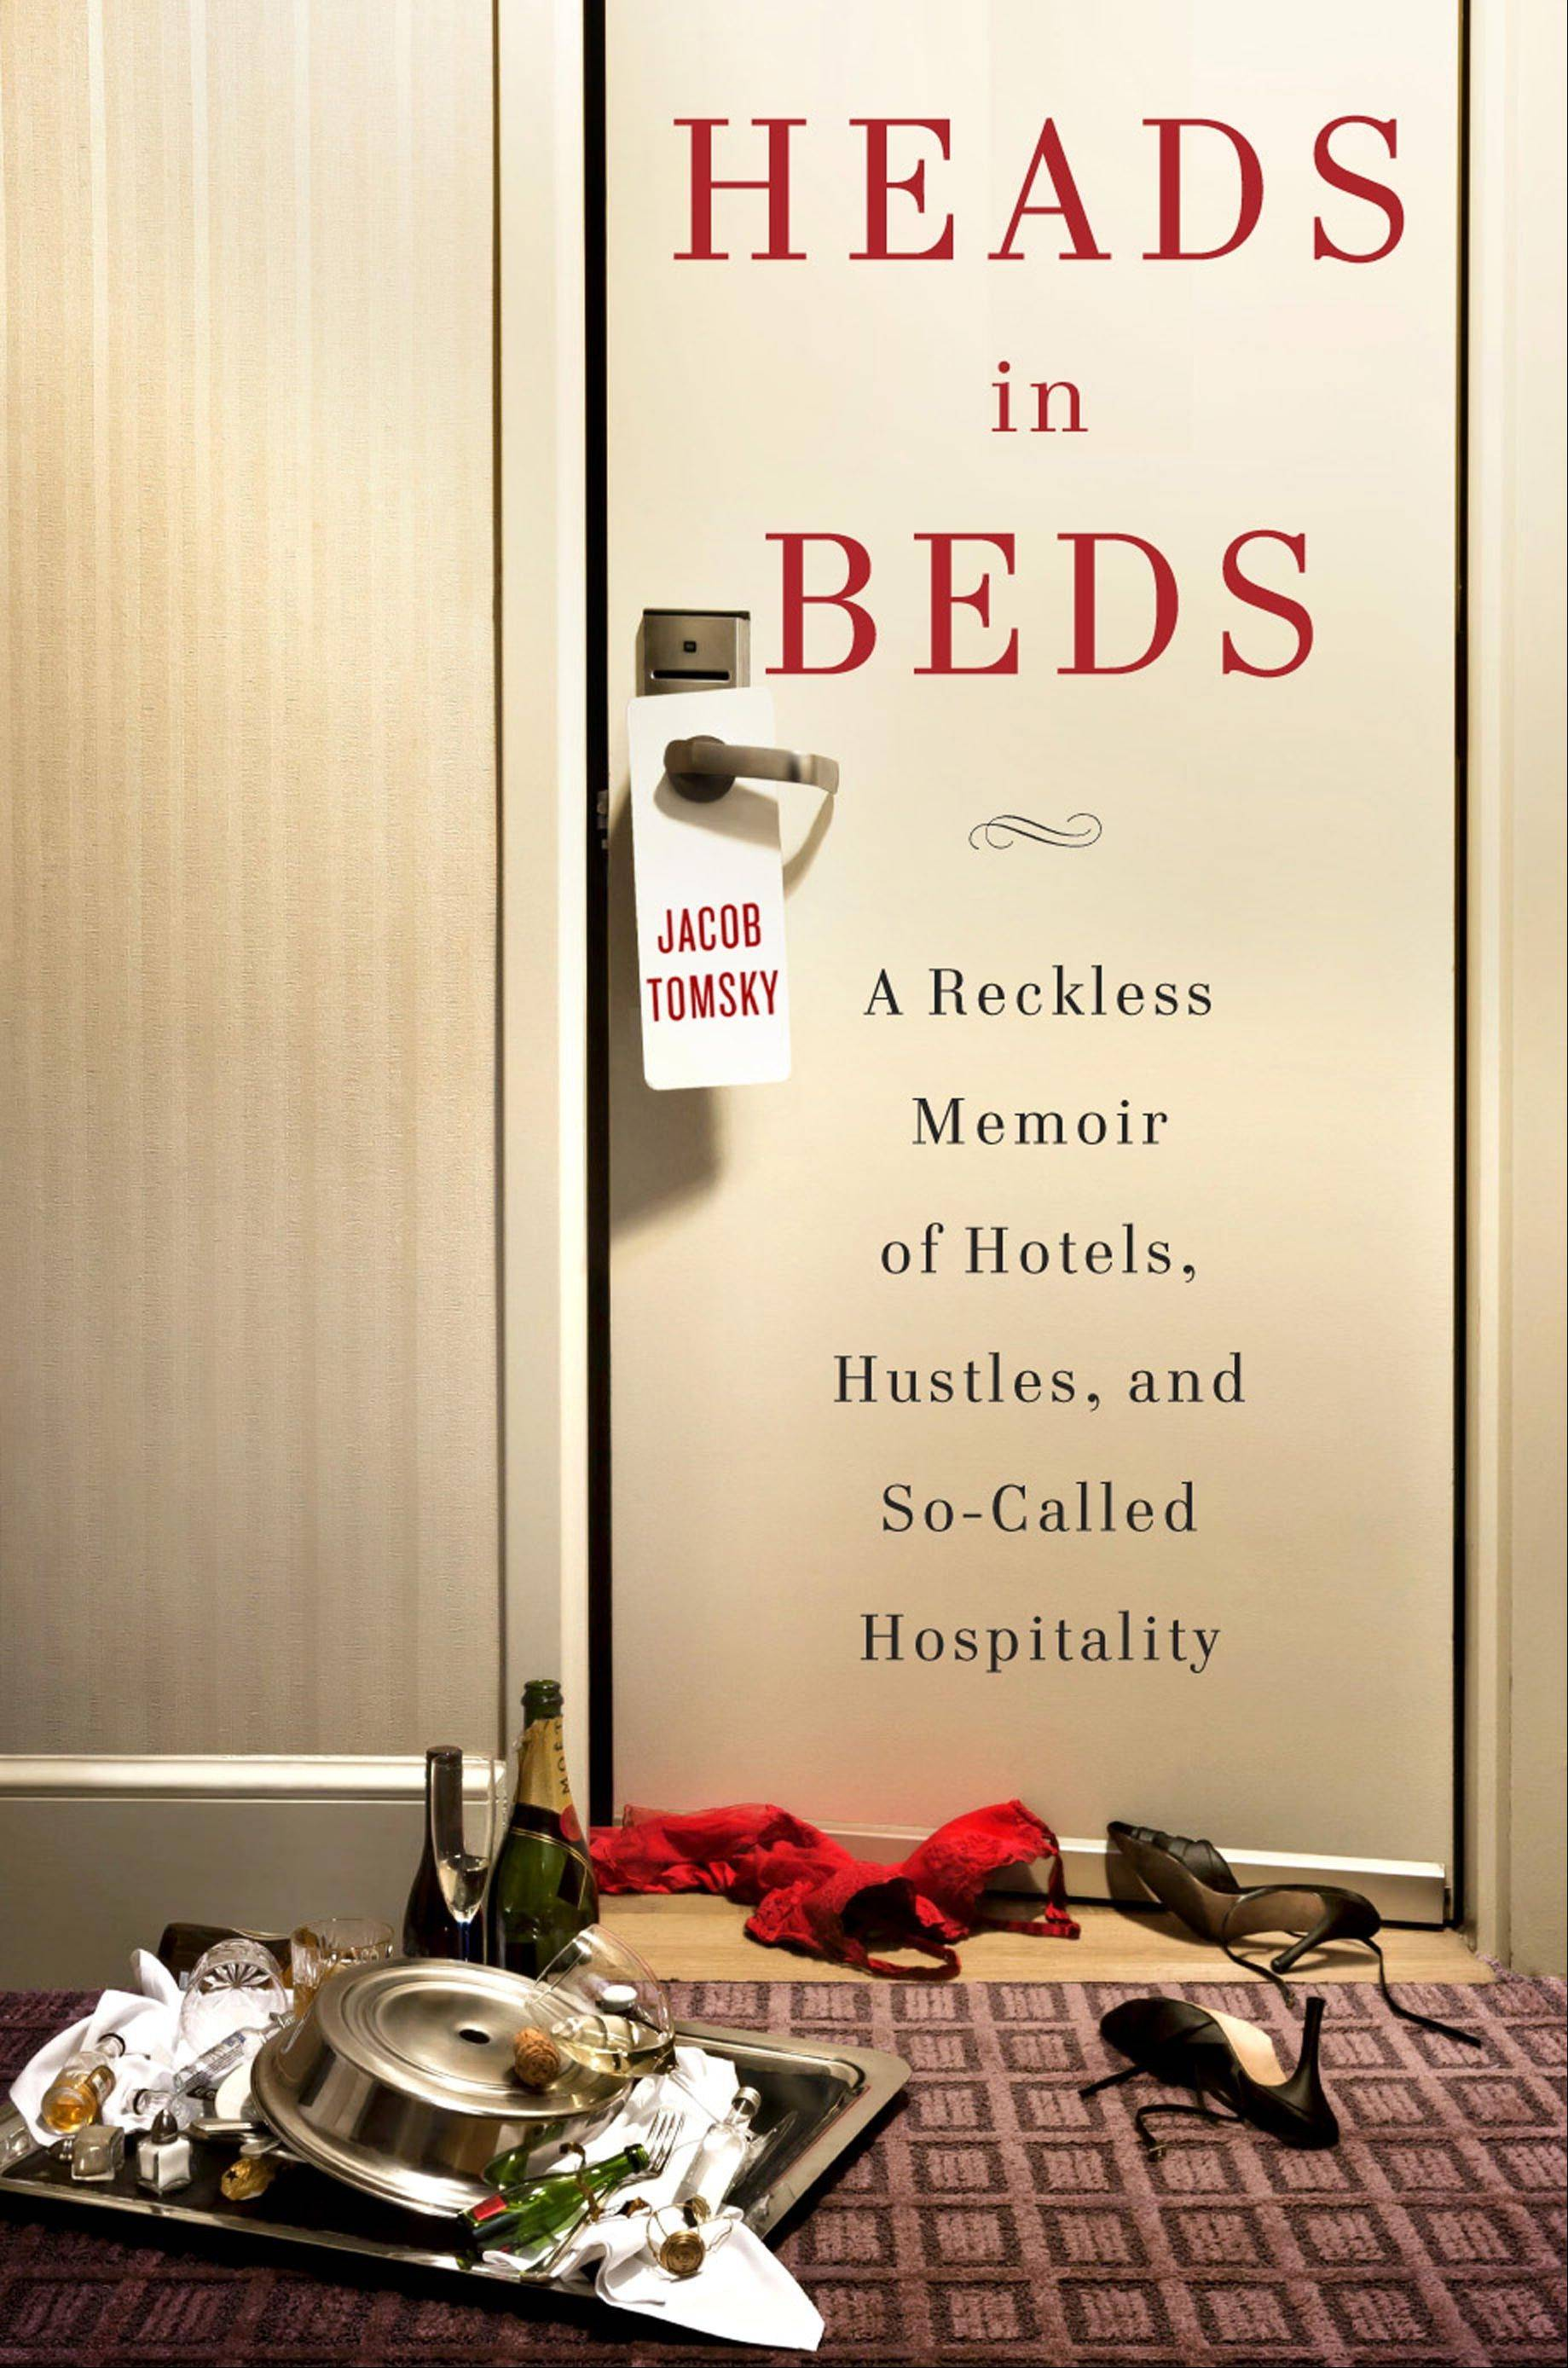 """Heads in Beds: A Reckless Memoir of Hotels, Hustles, and So-Called Hospitality"" by Jacob Tomsky"